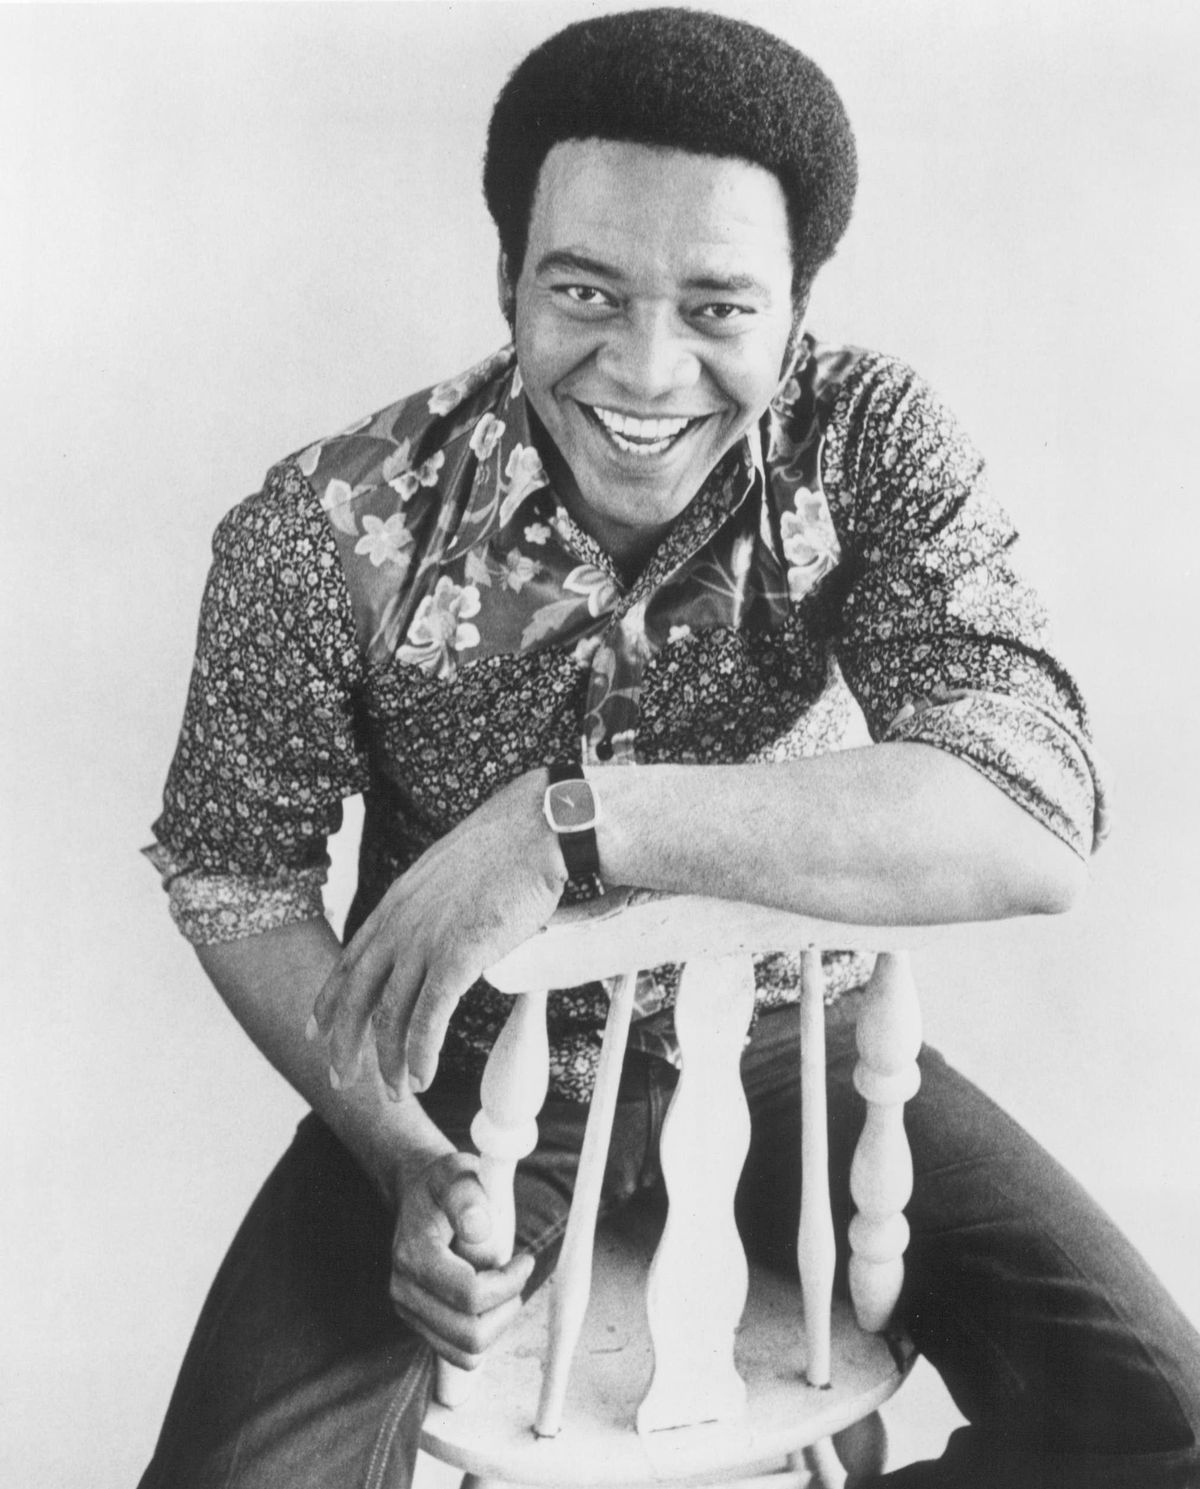 Withers (pictured in 1972) joined the Navy at 17 and spent nine years in the service as an aircraft mechanic installing toilets. After his discharge, he moved to Los Angeles, worked at an aircraft parts factory, bought a guitar at a pawn shop and recorded demos of his tunes in hopes of landing a recording contract.